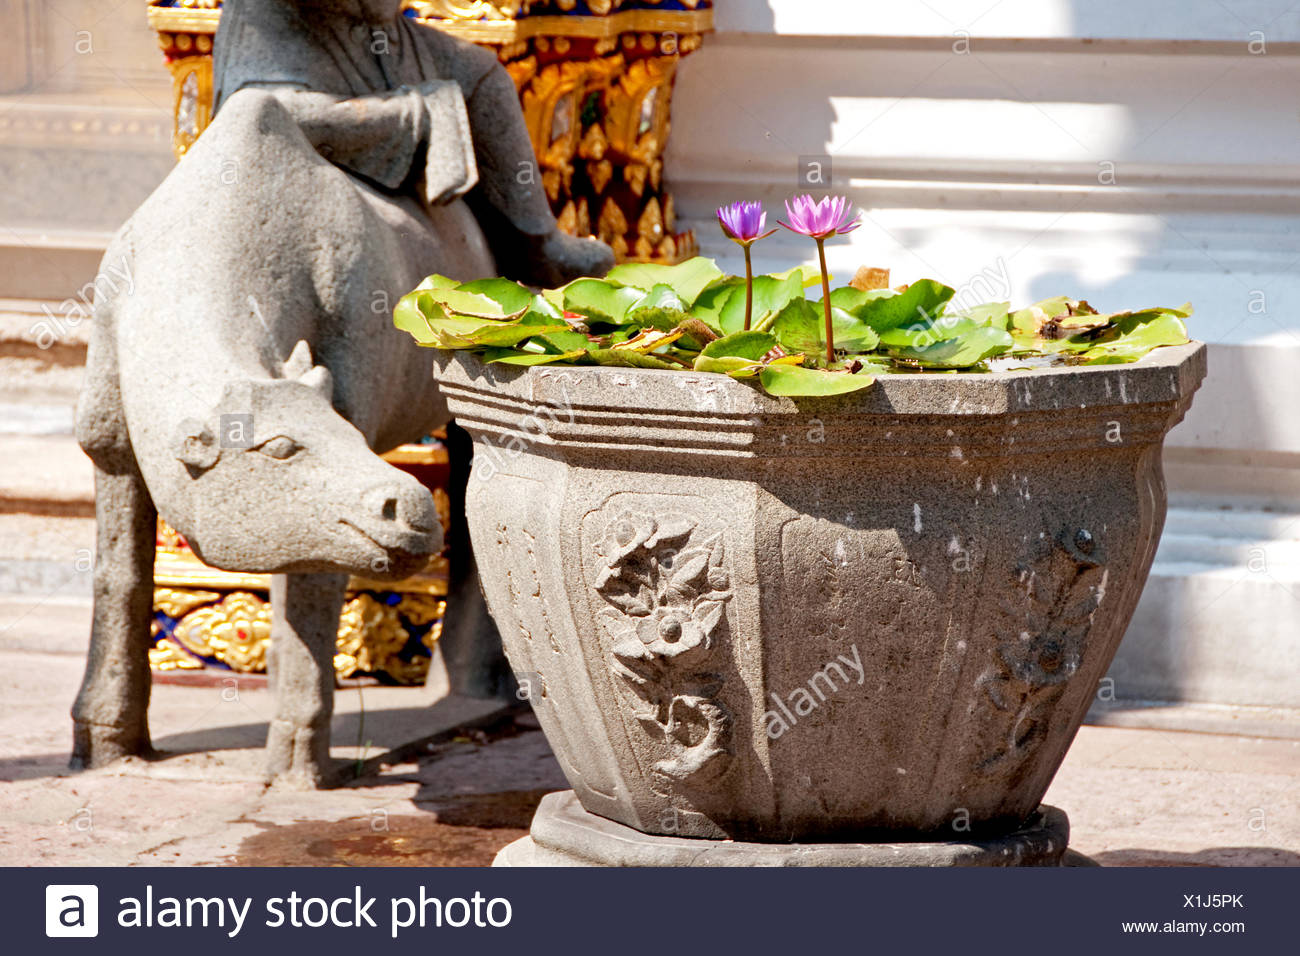 water lilies in stone urn - Stock Image